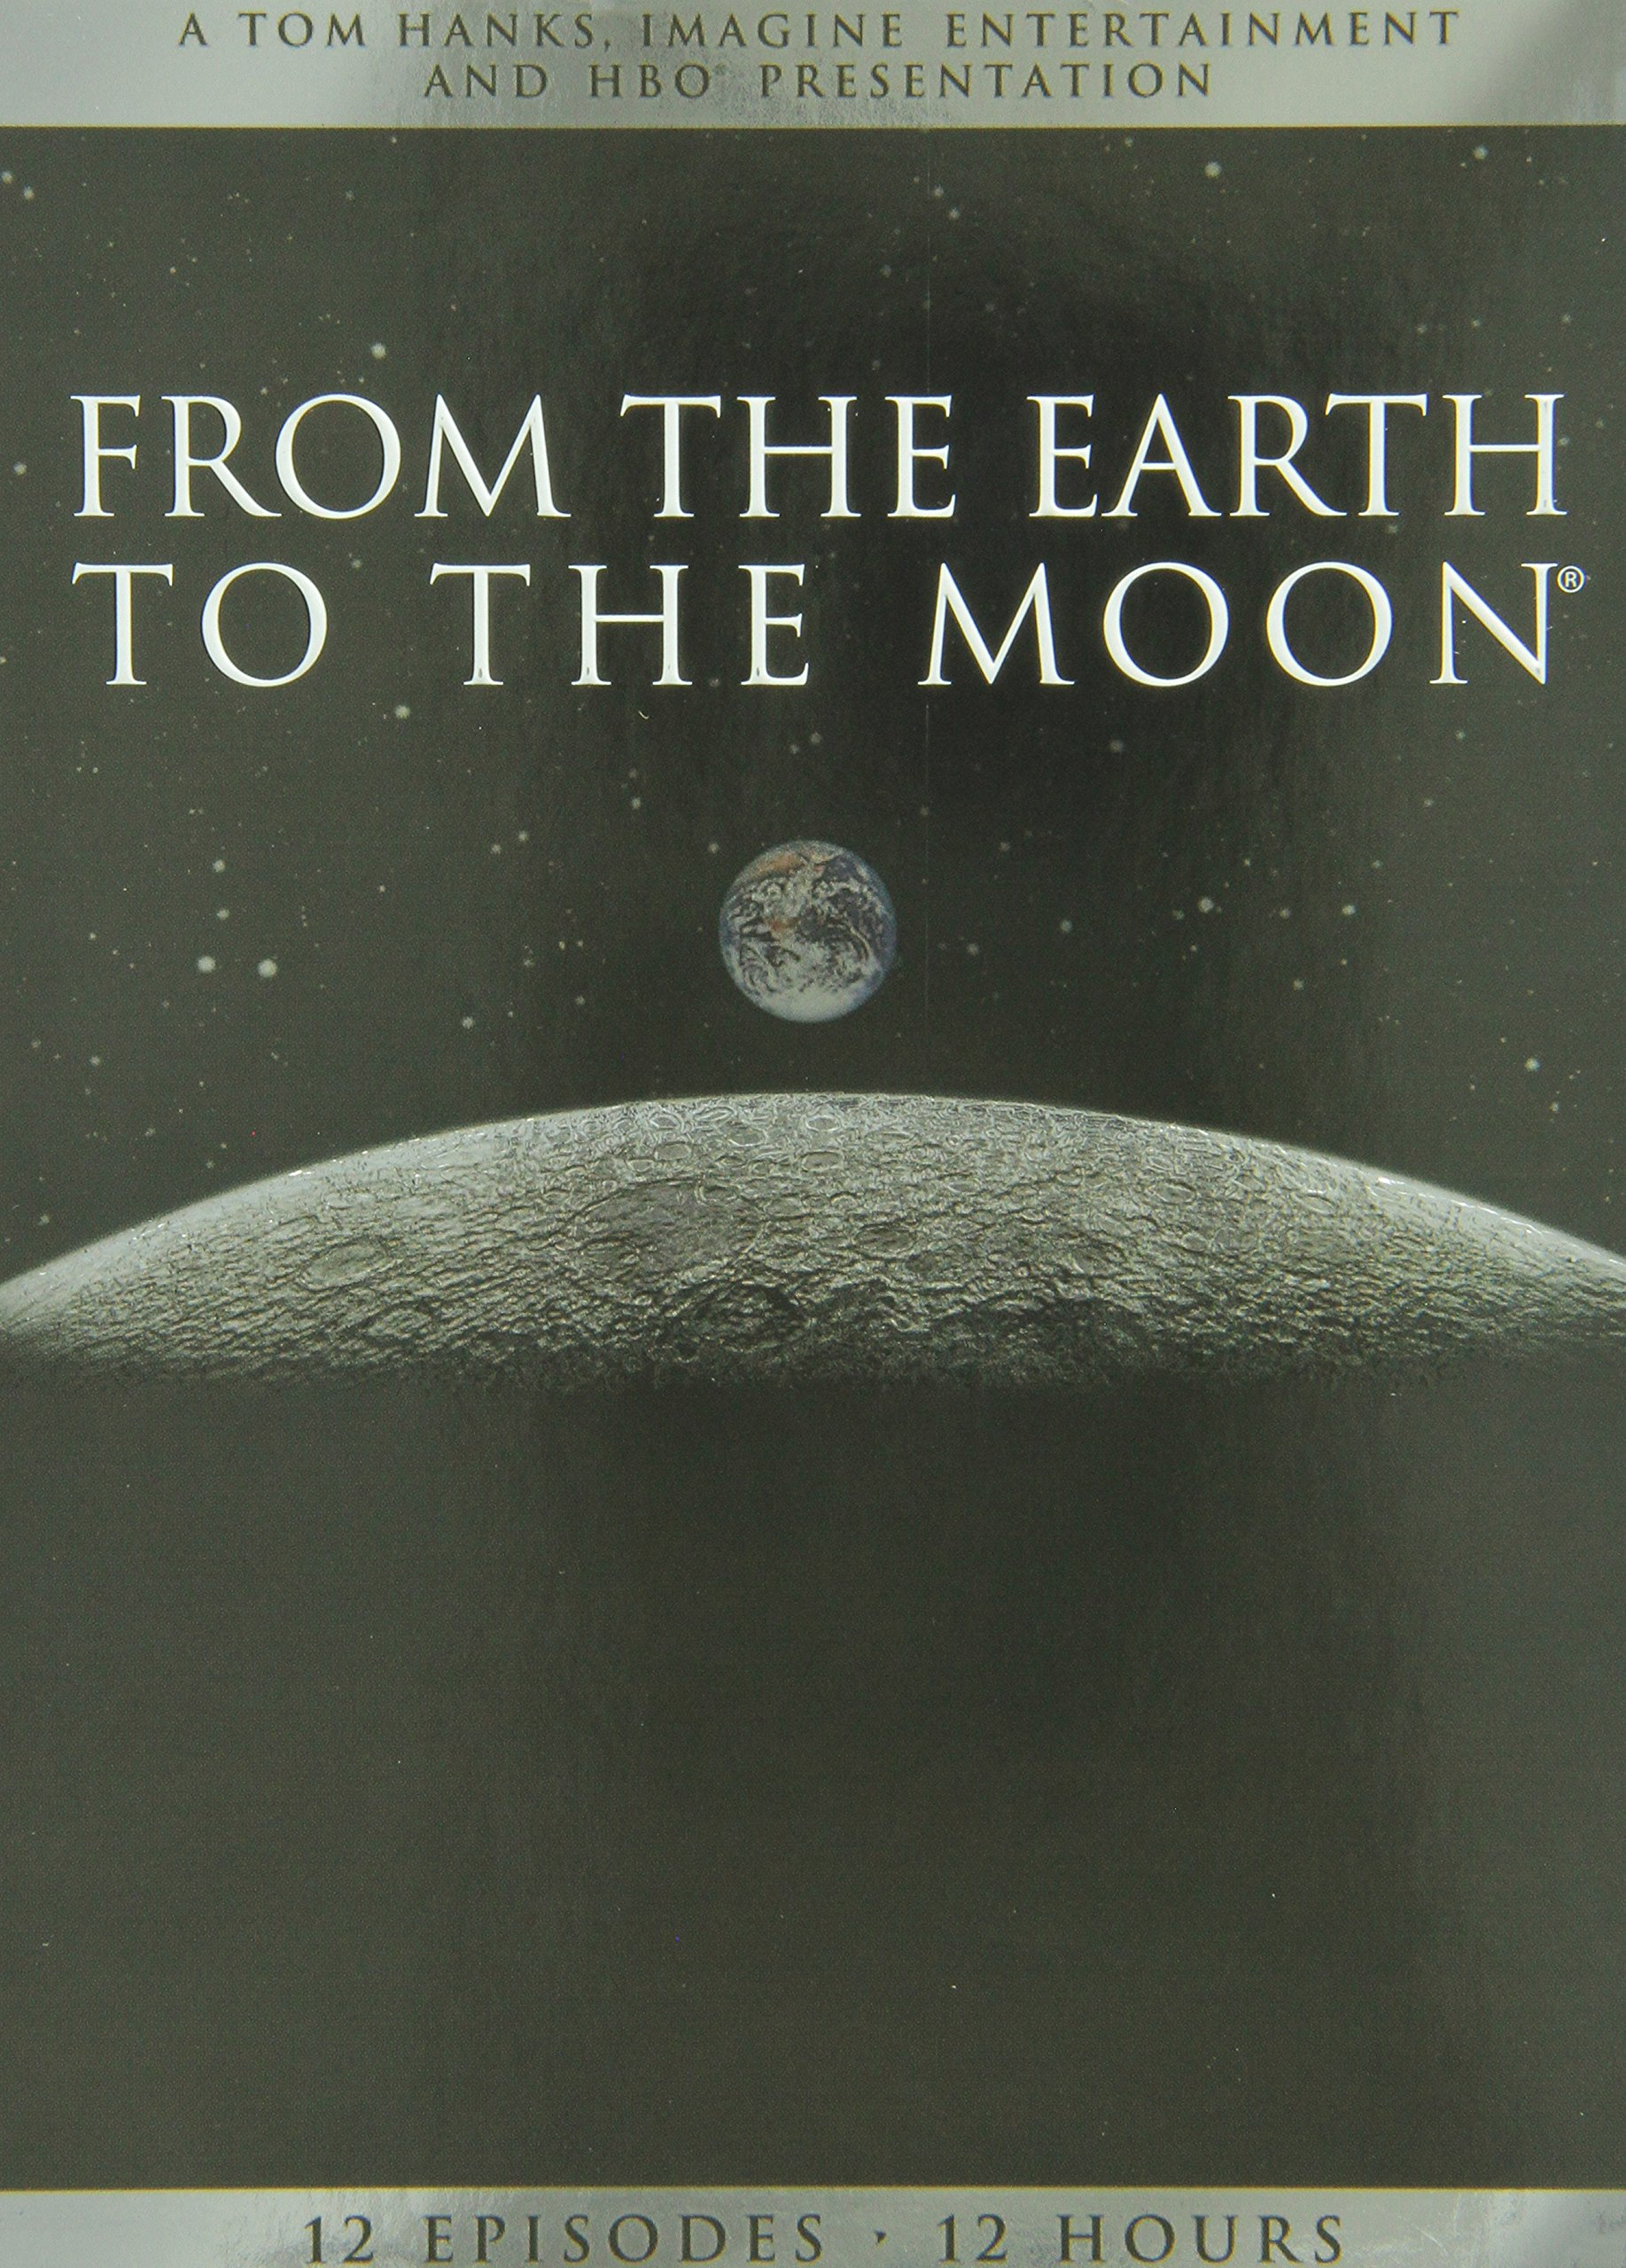 From the Earth to the Moon by HBO HOME VIDEO